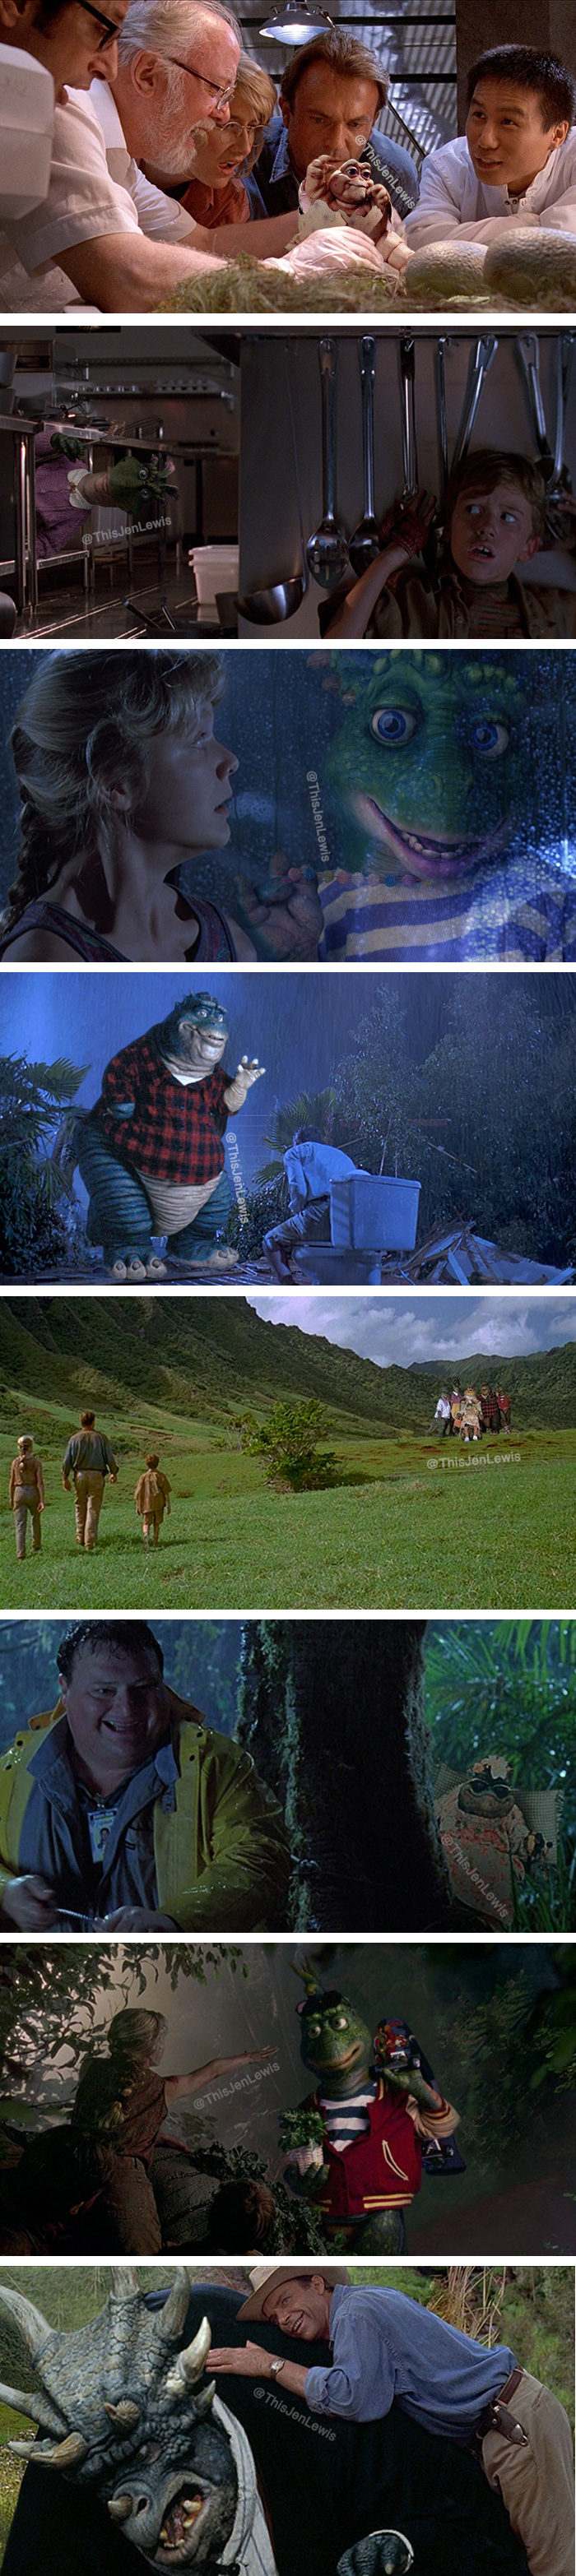 Jurassic Park but the dinosaurs are from the 90s TV show